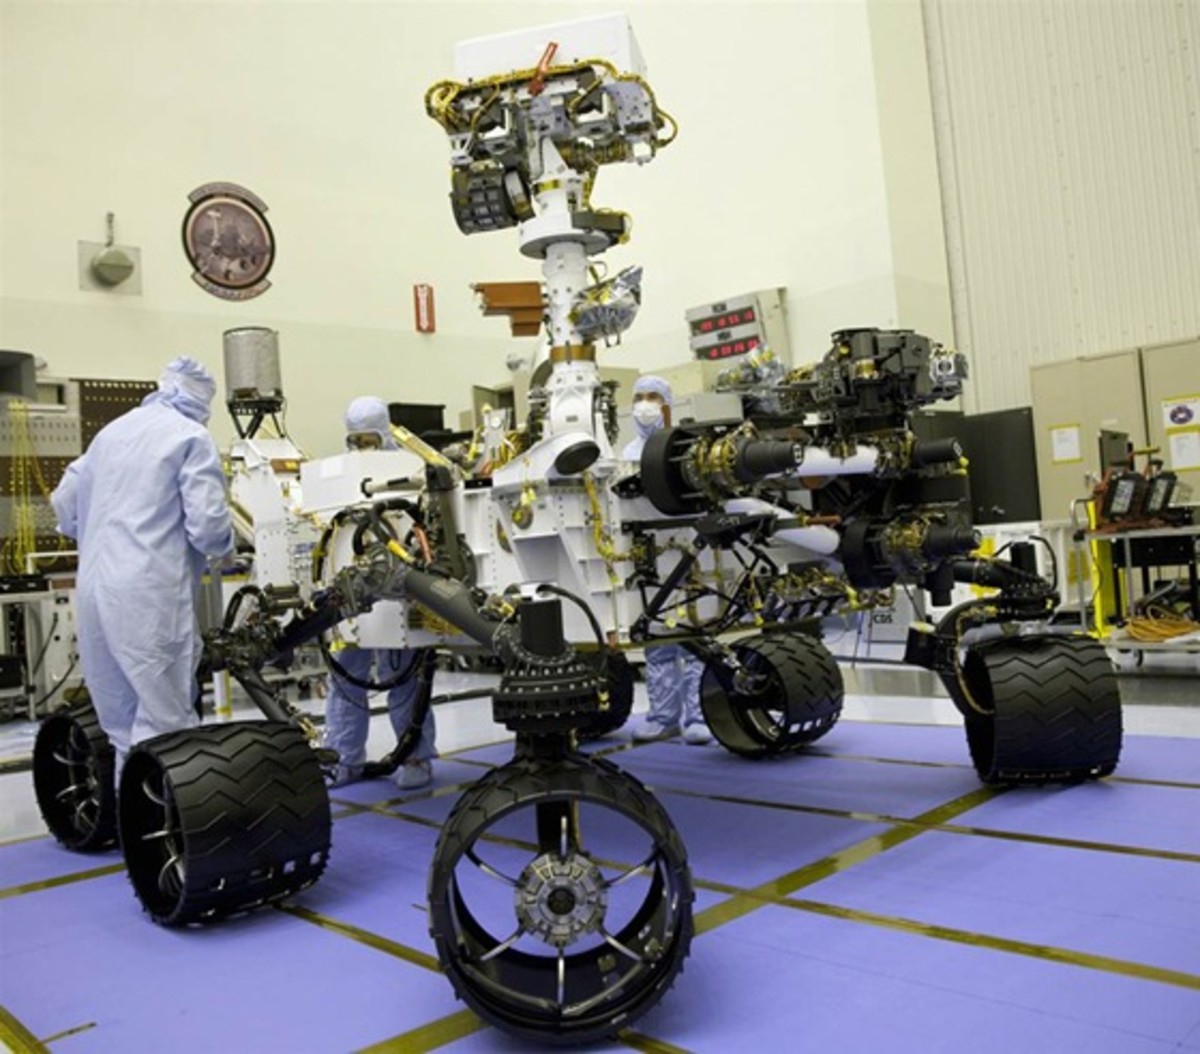 Curiosity Rover, is the largest rover ever sent to Mars.